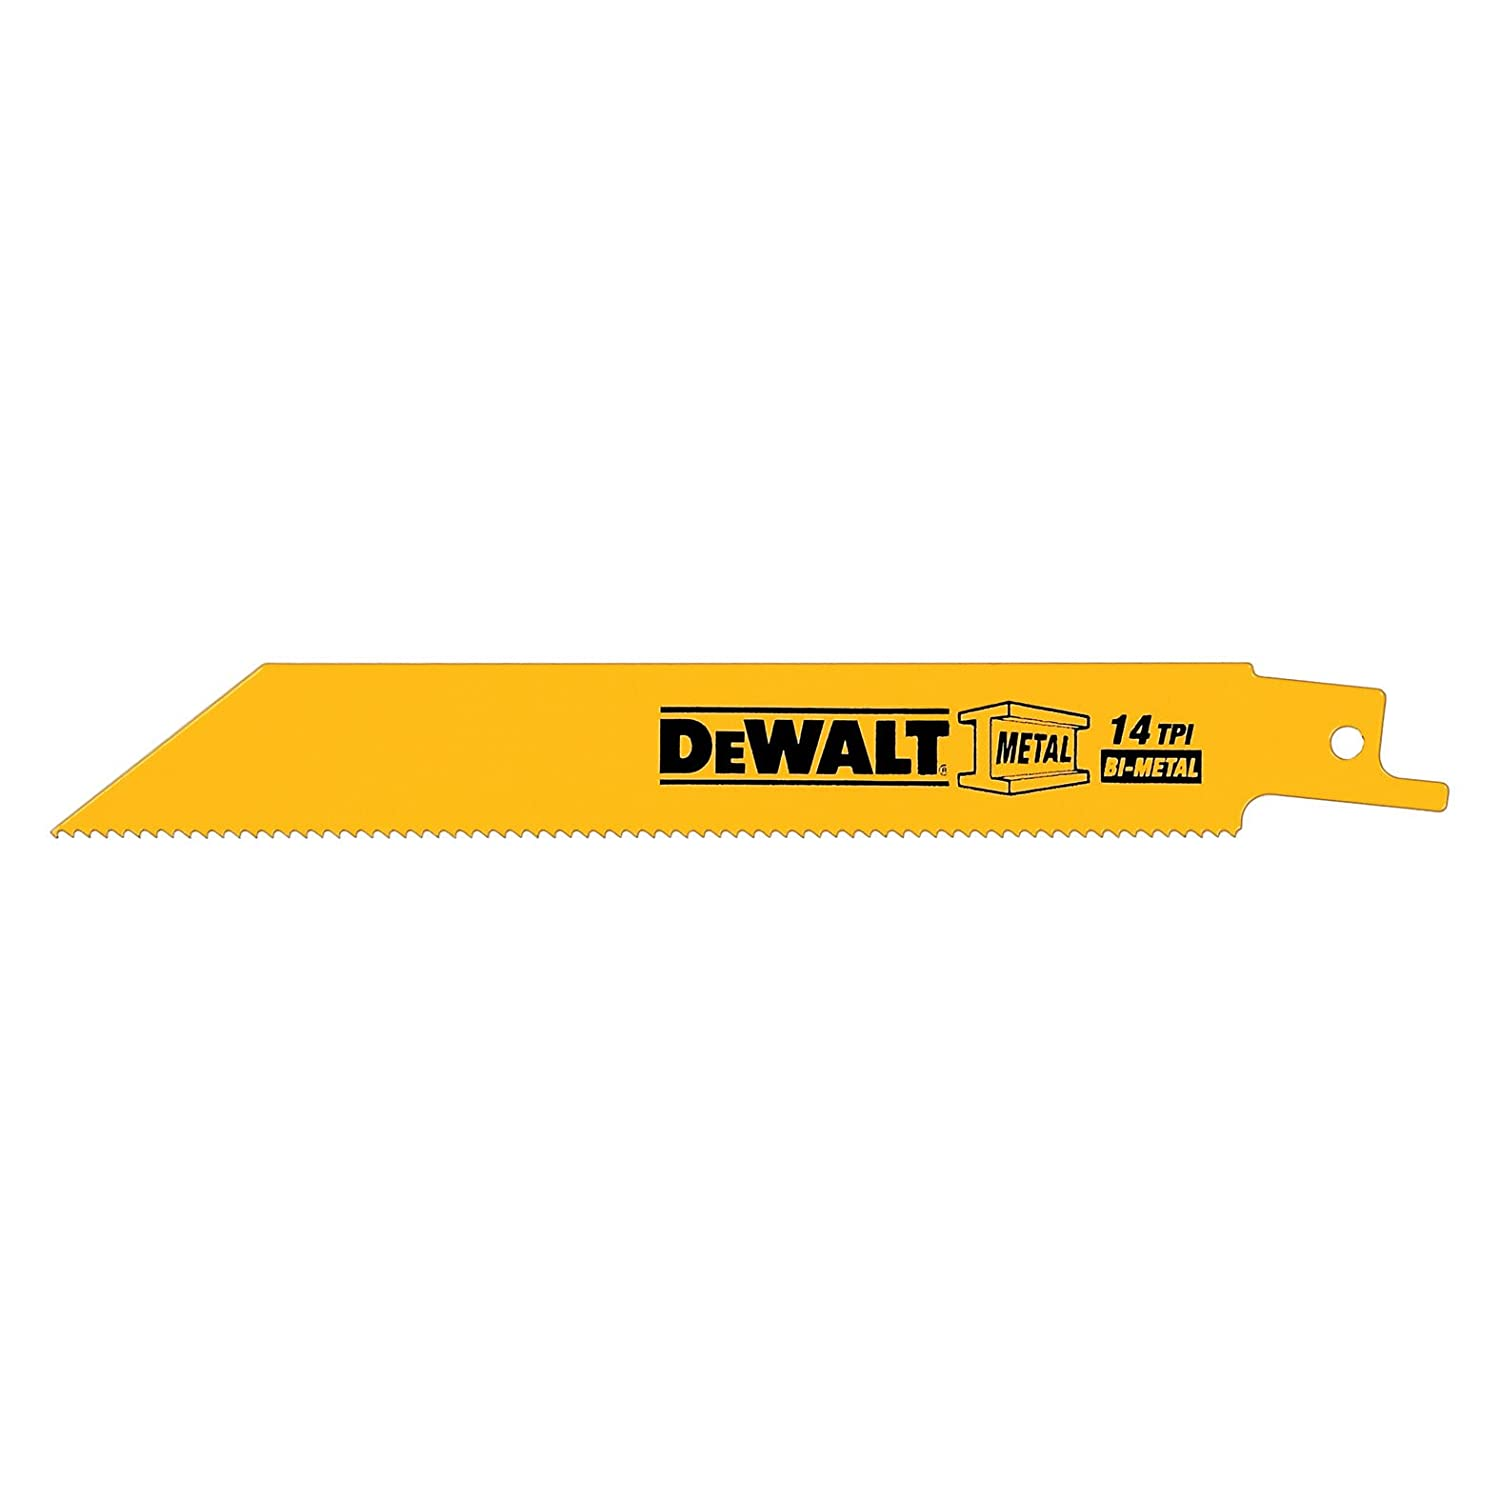 DEWALT DW4838 12-Inch 14 TPI Straight Back Bi-Metal Reciprocating Saw Blade (5-Pack)